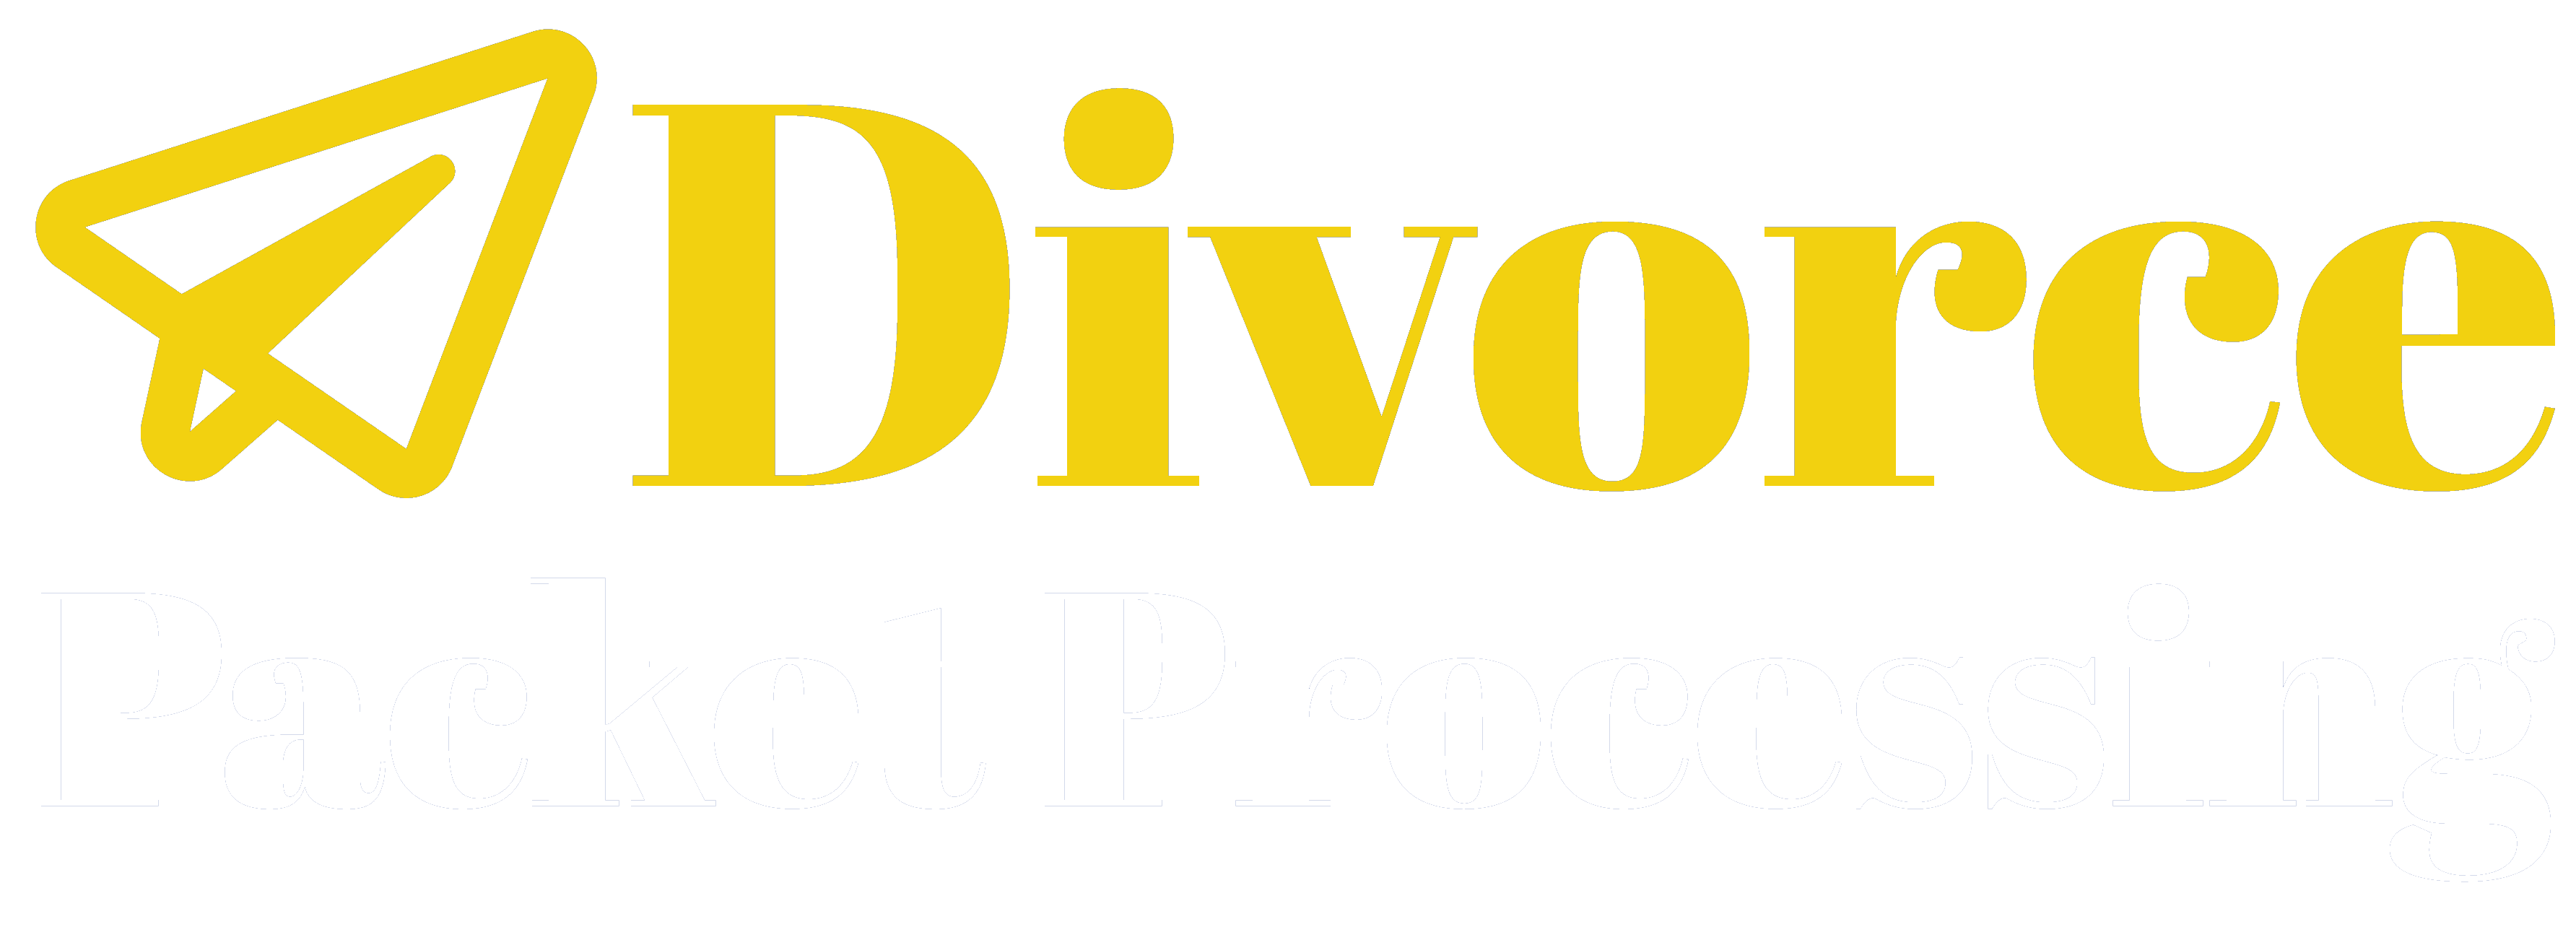 Divorce Packet Processing